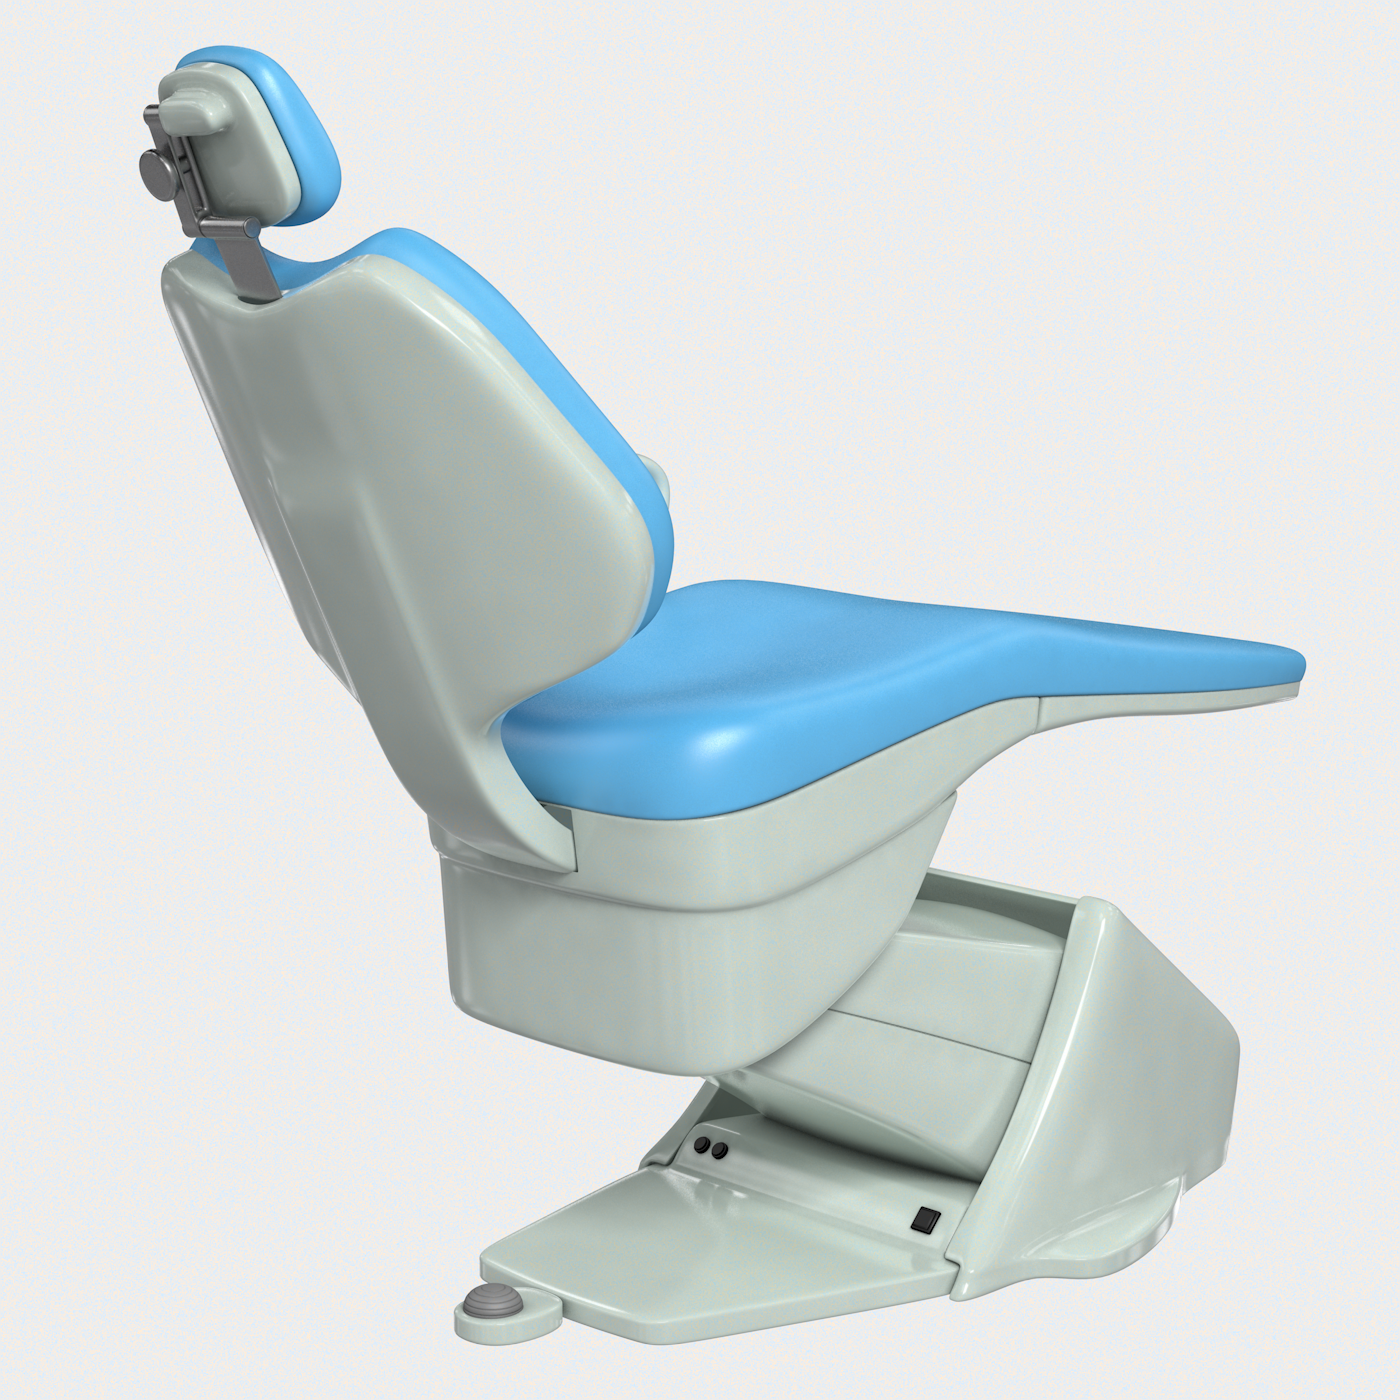 Stomatologic Dental Chair by FormD